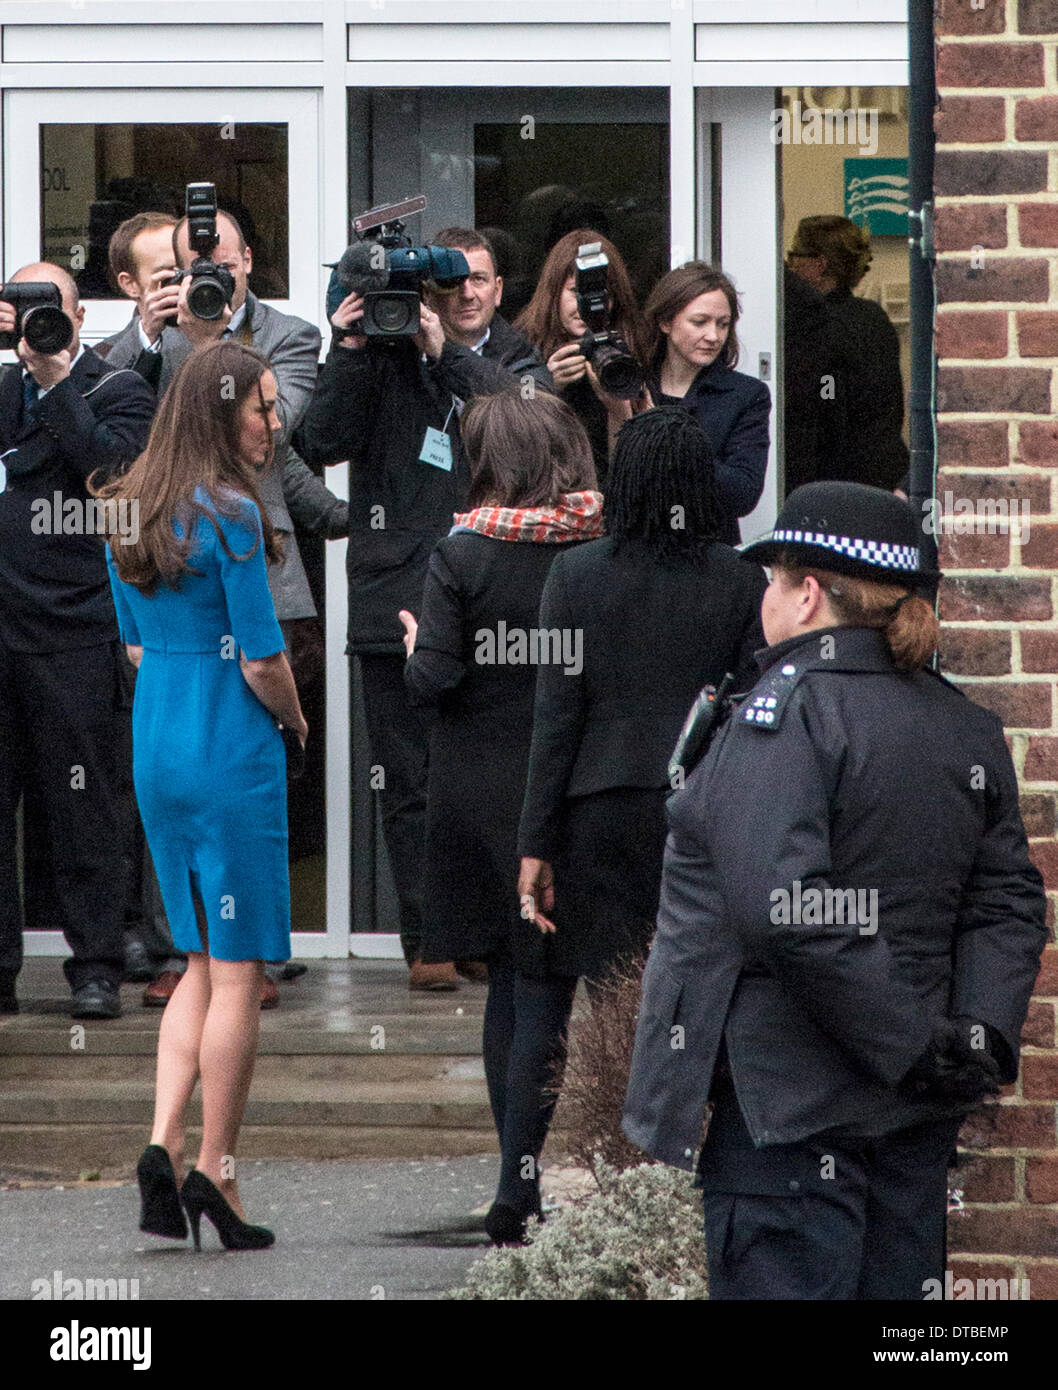 Northolt High School, London, UK.  14th Feb, 2014. The Duchess of Cambridge (left) arrives at Northolt High School, London, to open the new ICAP Art Room. Friday 14, 2014. Credit:  Guy Wells/Alamy Live News - Stock Image